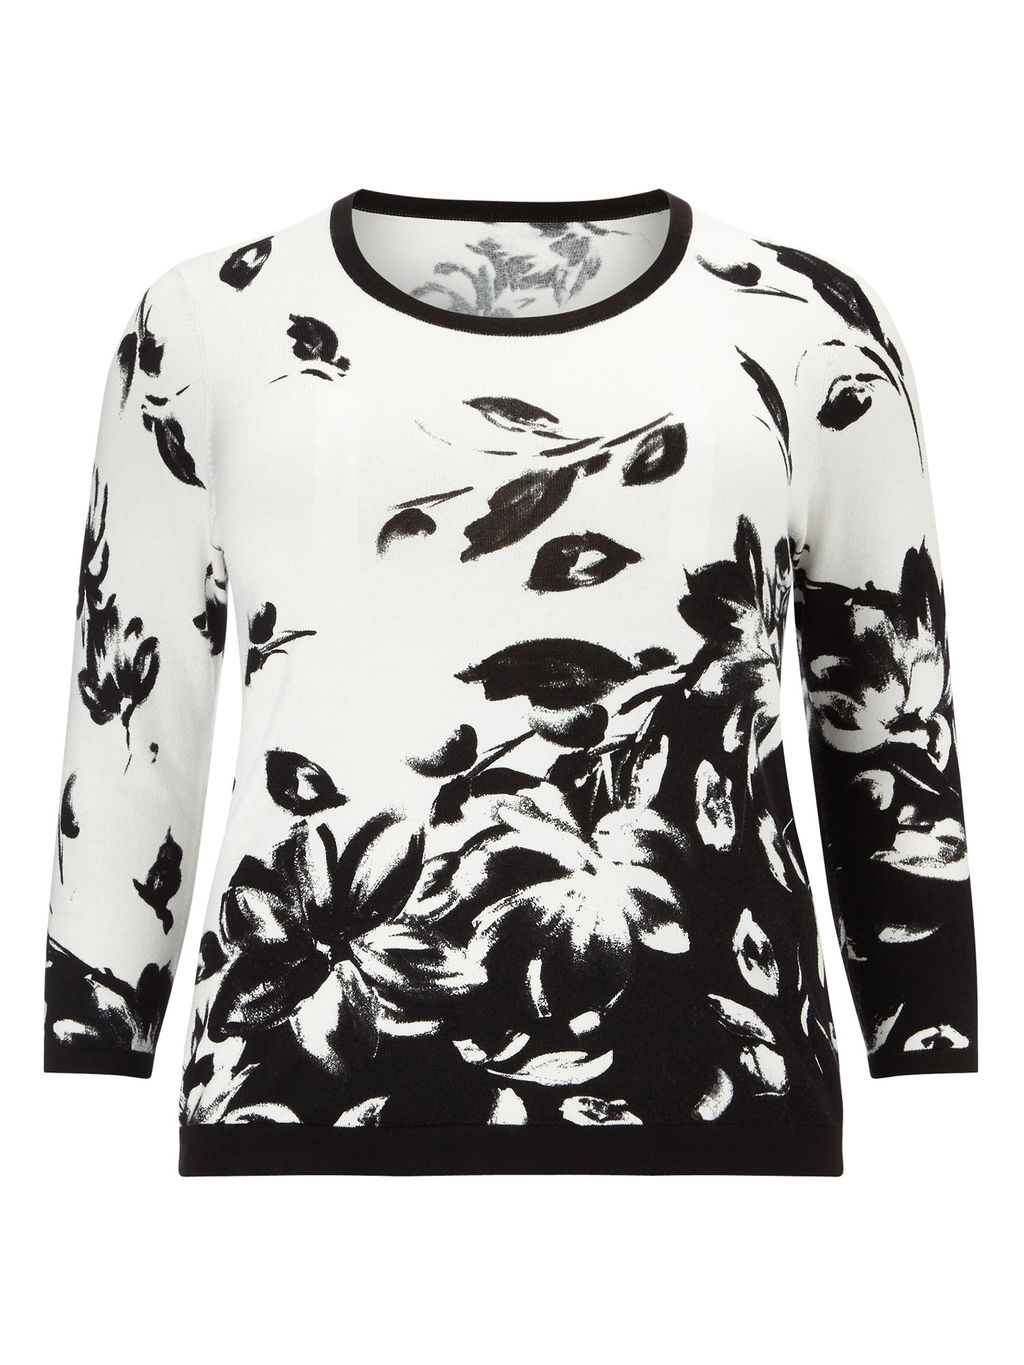 Monochrome Printed Jumper - neckline: round neck; style: standard; secondary colour: white; predominant colour: black; occasions: casual; length: standard; fit: slim fit; sleeve length: long sleeve; sleeve style: standard; trends: monochrome; texture group: knits/crochet; pattern type: fabric; pattern: florals; fibres: viscose/rayon - mix; multicoloured: multicoloured; season: a/w 2015; wardrobe: highlight